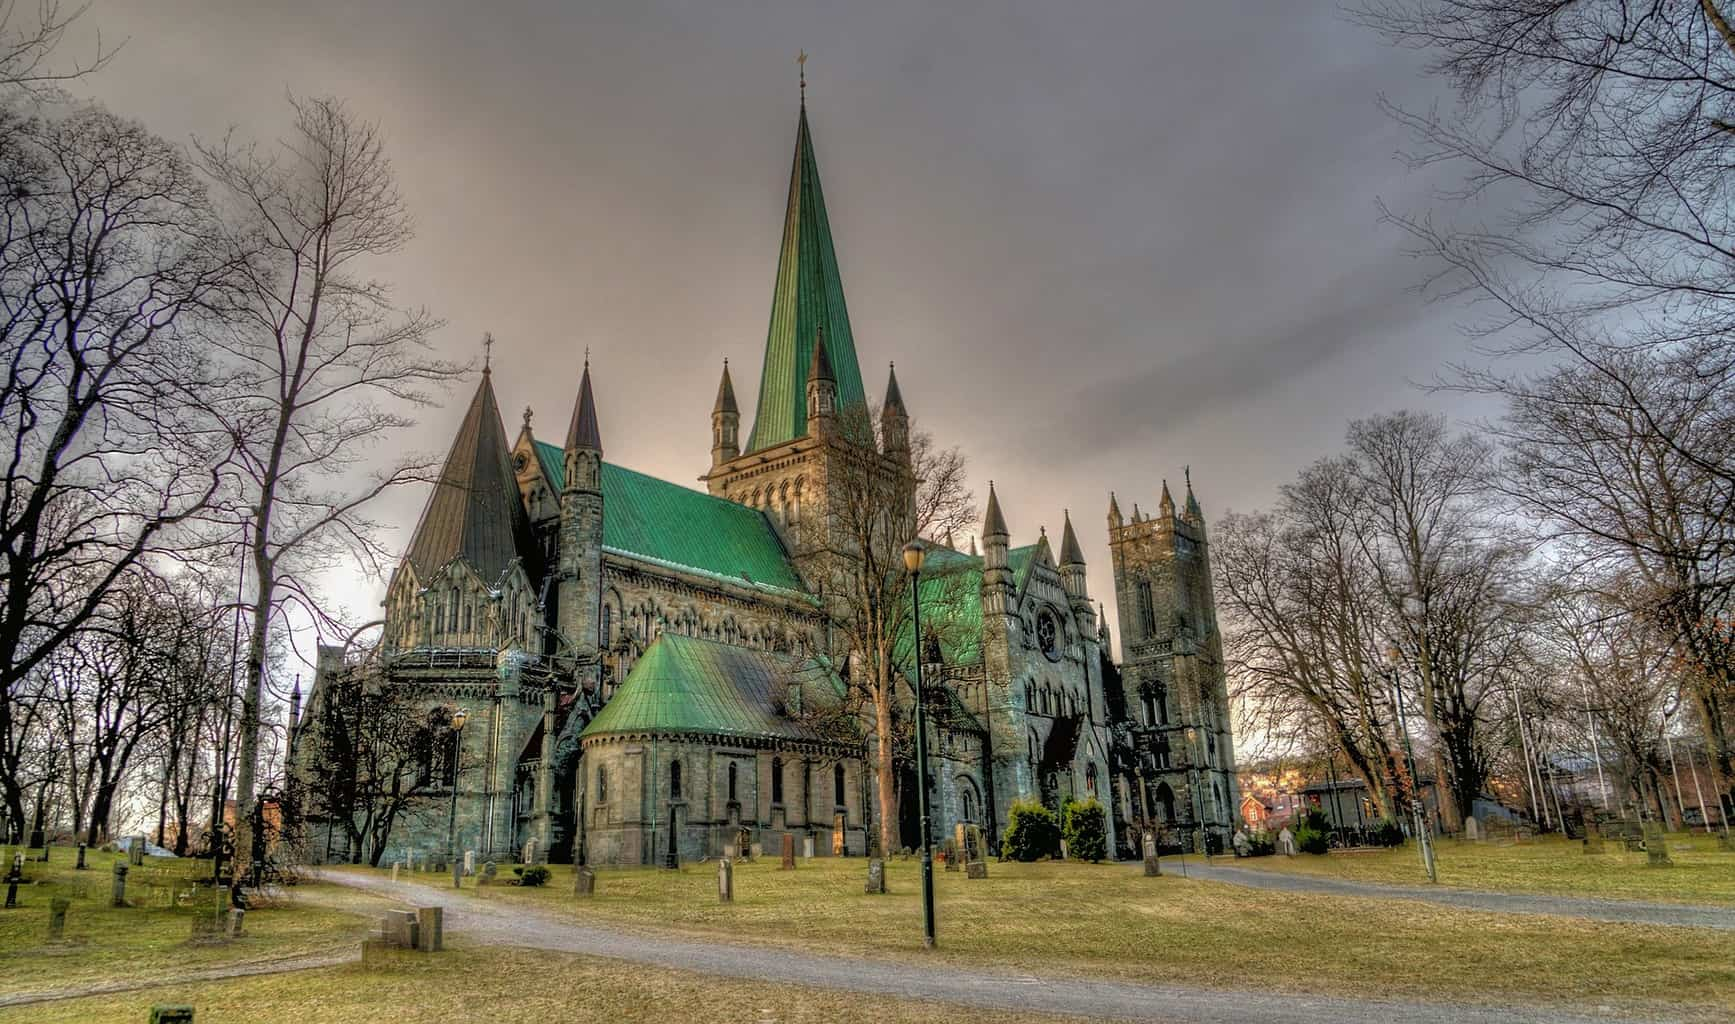 One of my fave Norway travel tips is to avoid the convenience stores and visit Nidaros Cathedral in Trondheim, Norway instead.